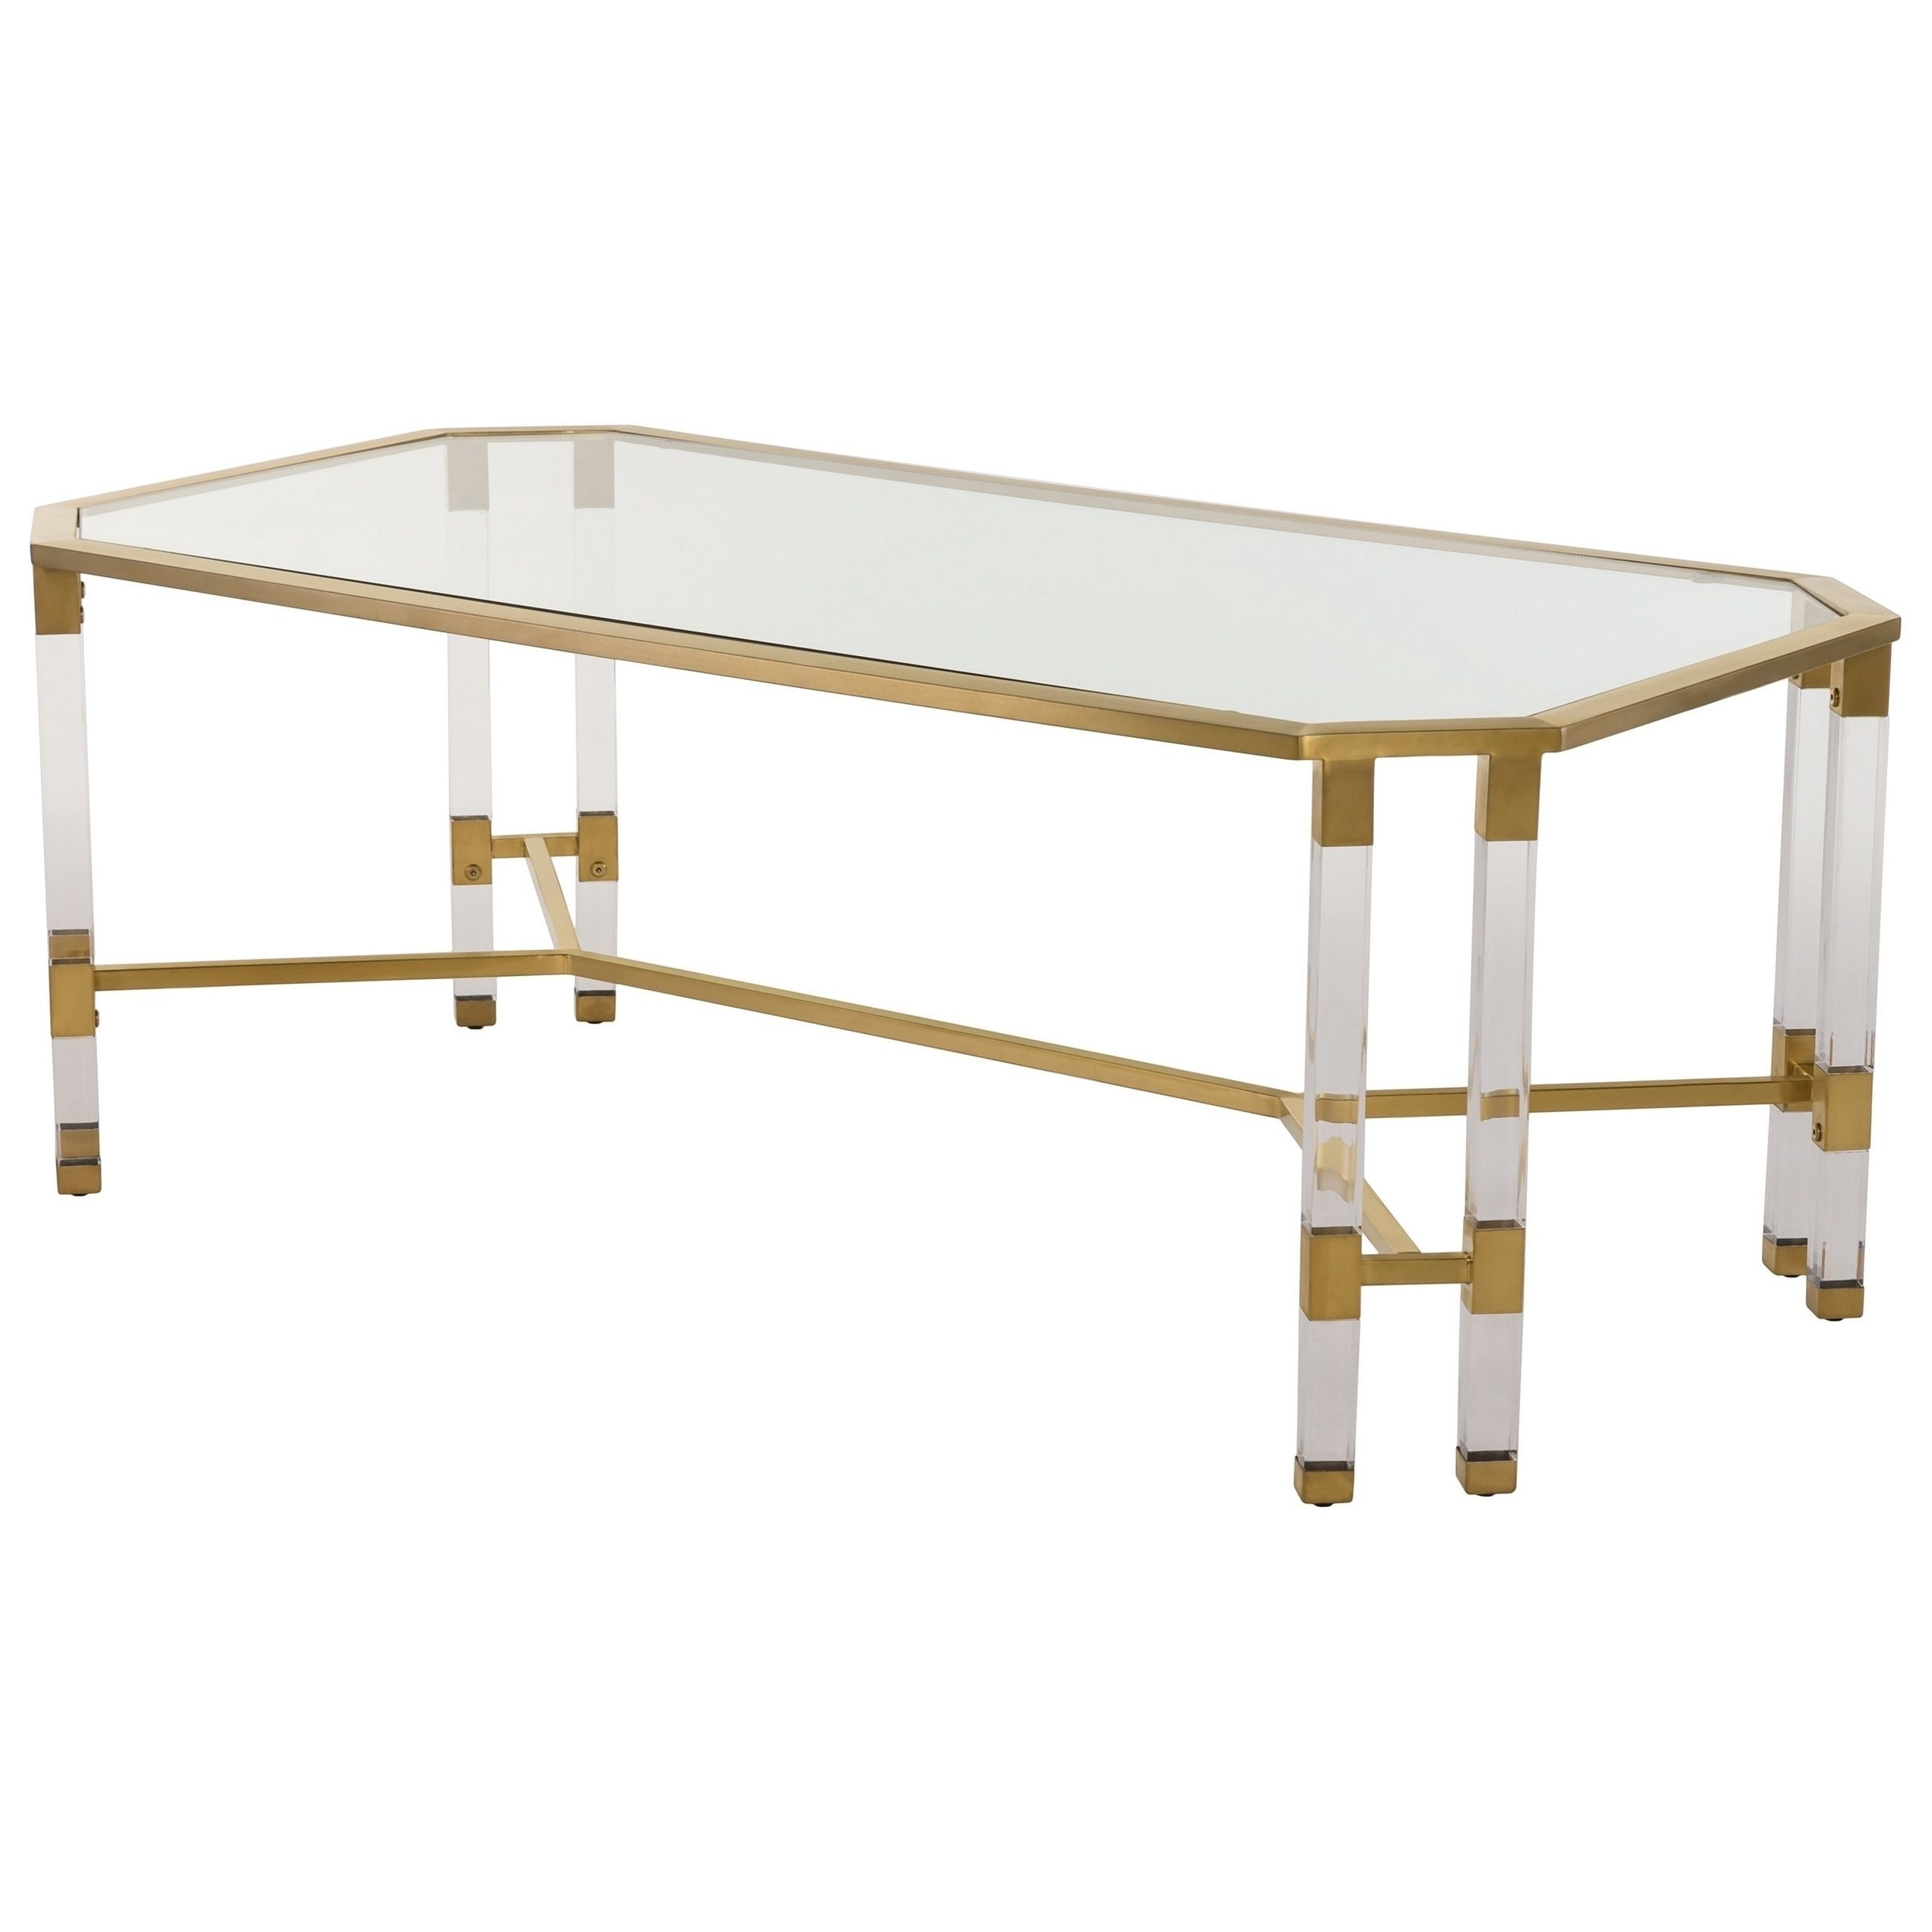 Well Liked Acrylic & Brushed Brass Coffee Tables Pertaining To Safavieh Couture High Line Collection Chandon Bronze Brass Acrylic (View 17 of 20)